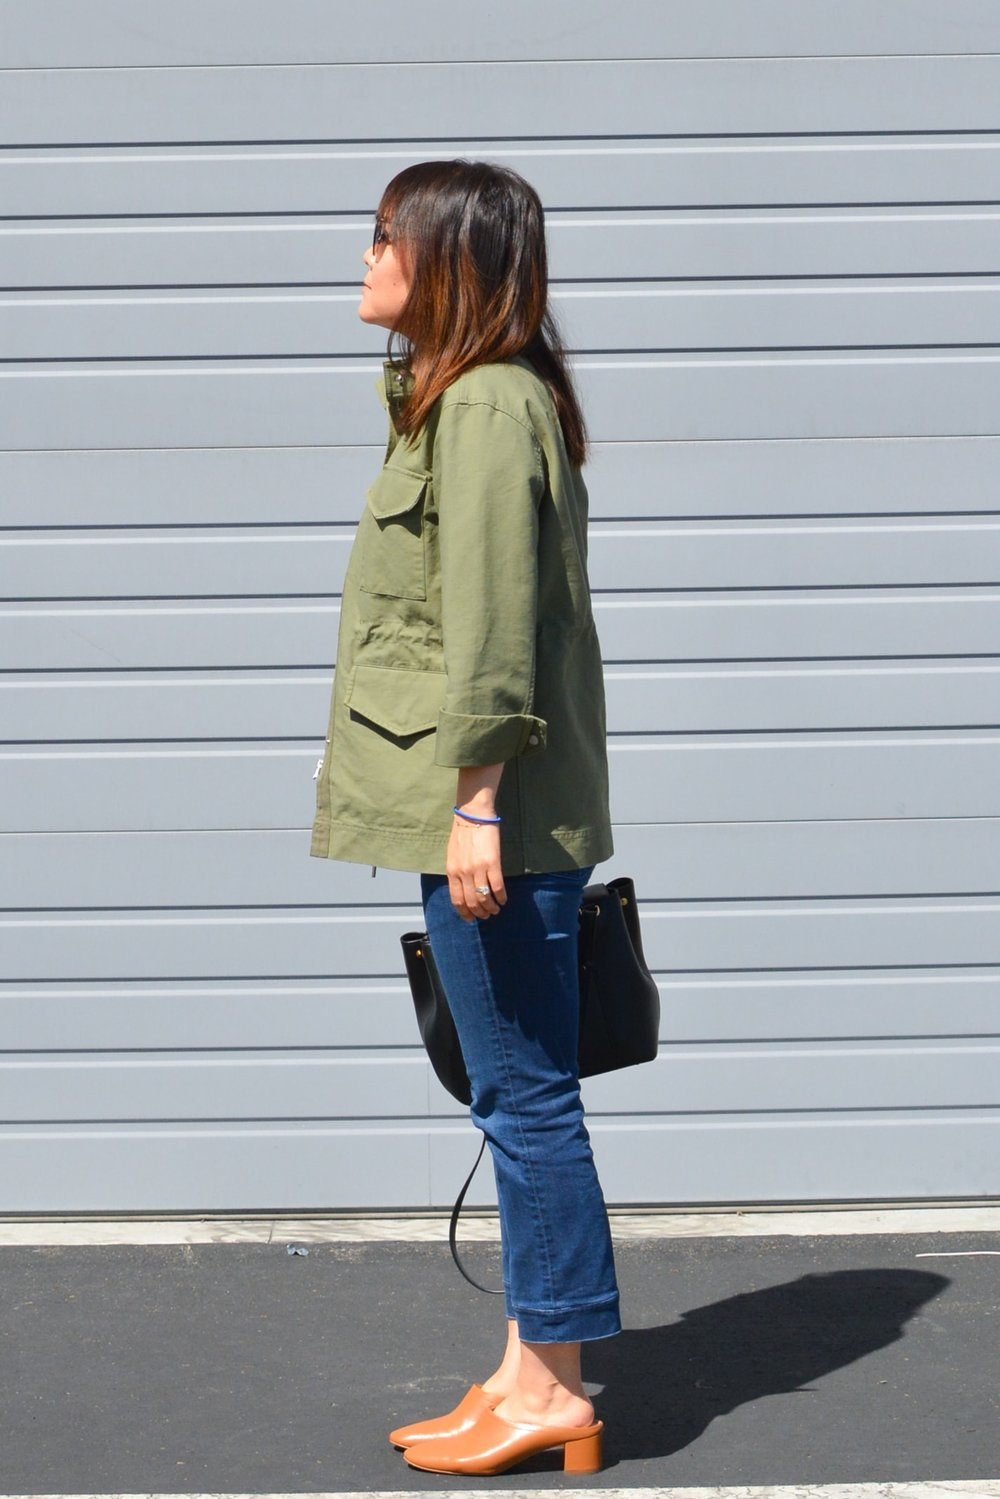 Everlane Review The Modern Utility Jacket (1 of 3)-min.jpg